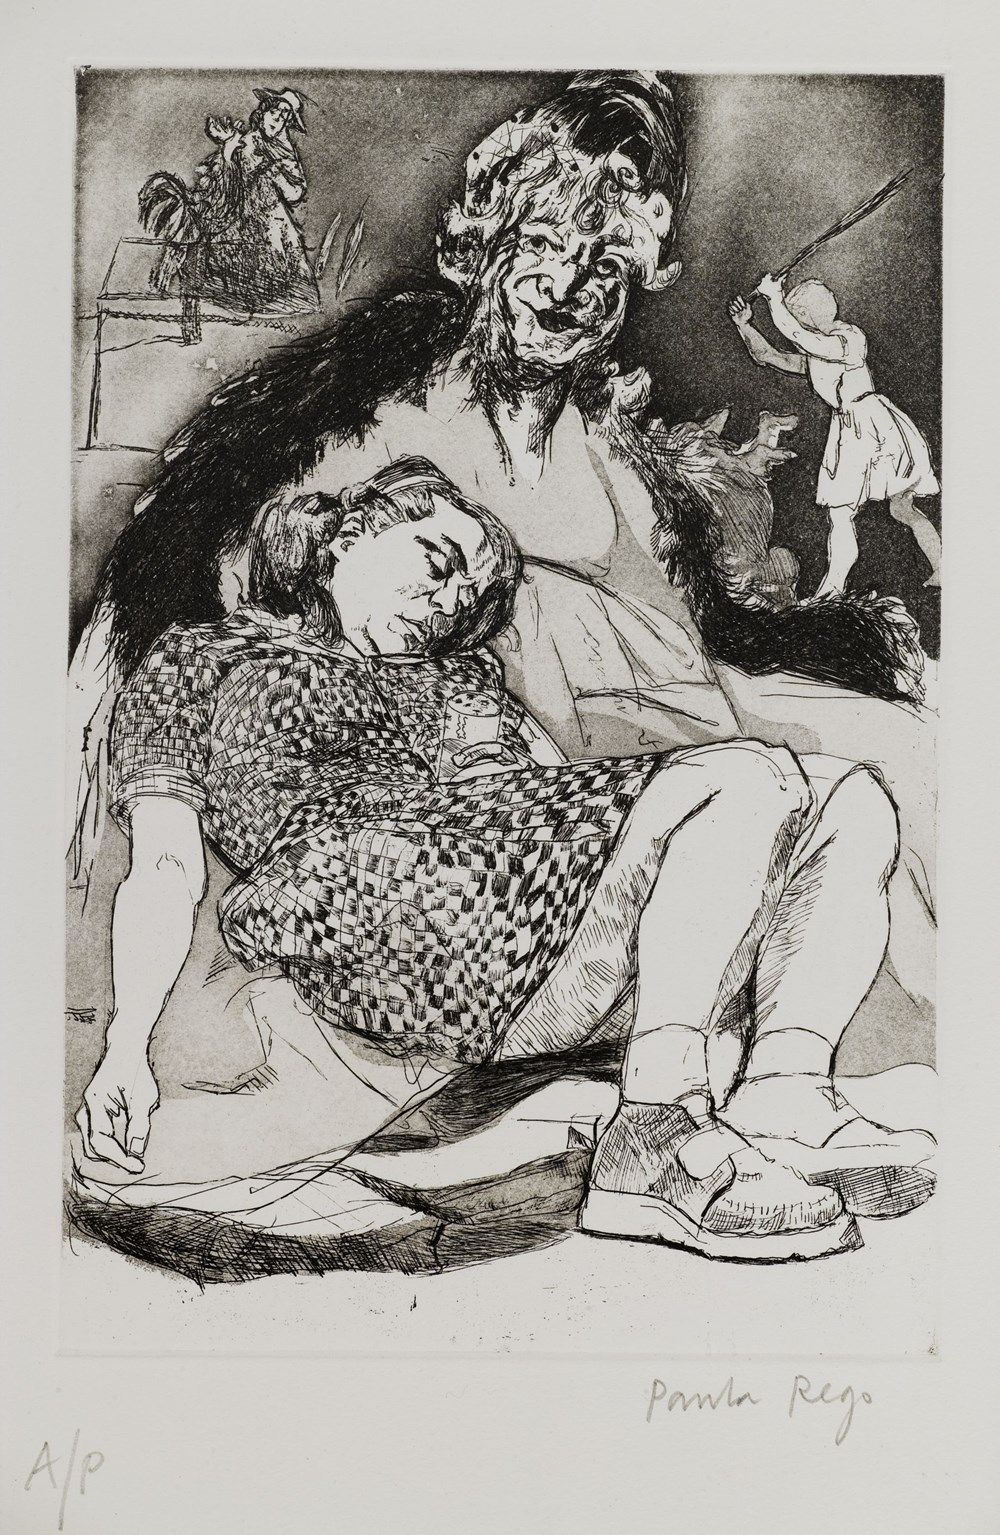 Terrence Higgins Trust, The Timed Auction 2021 - Lot 22, Paula Rego, Misericordia